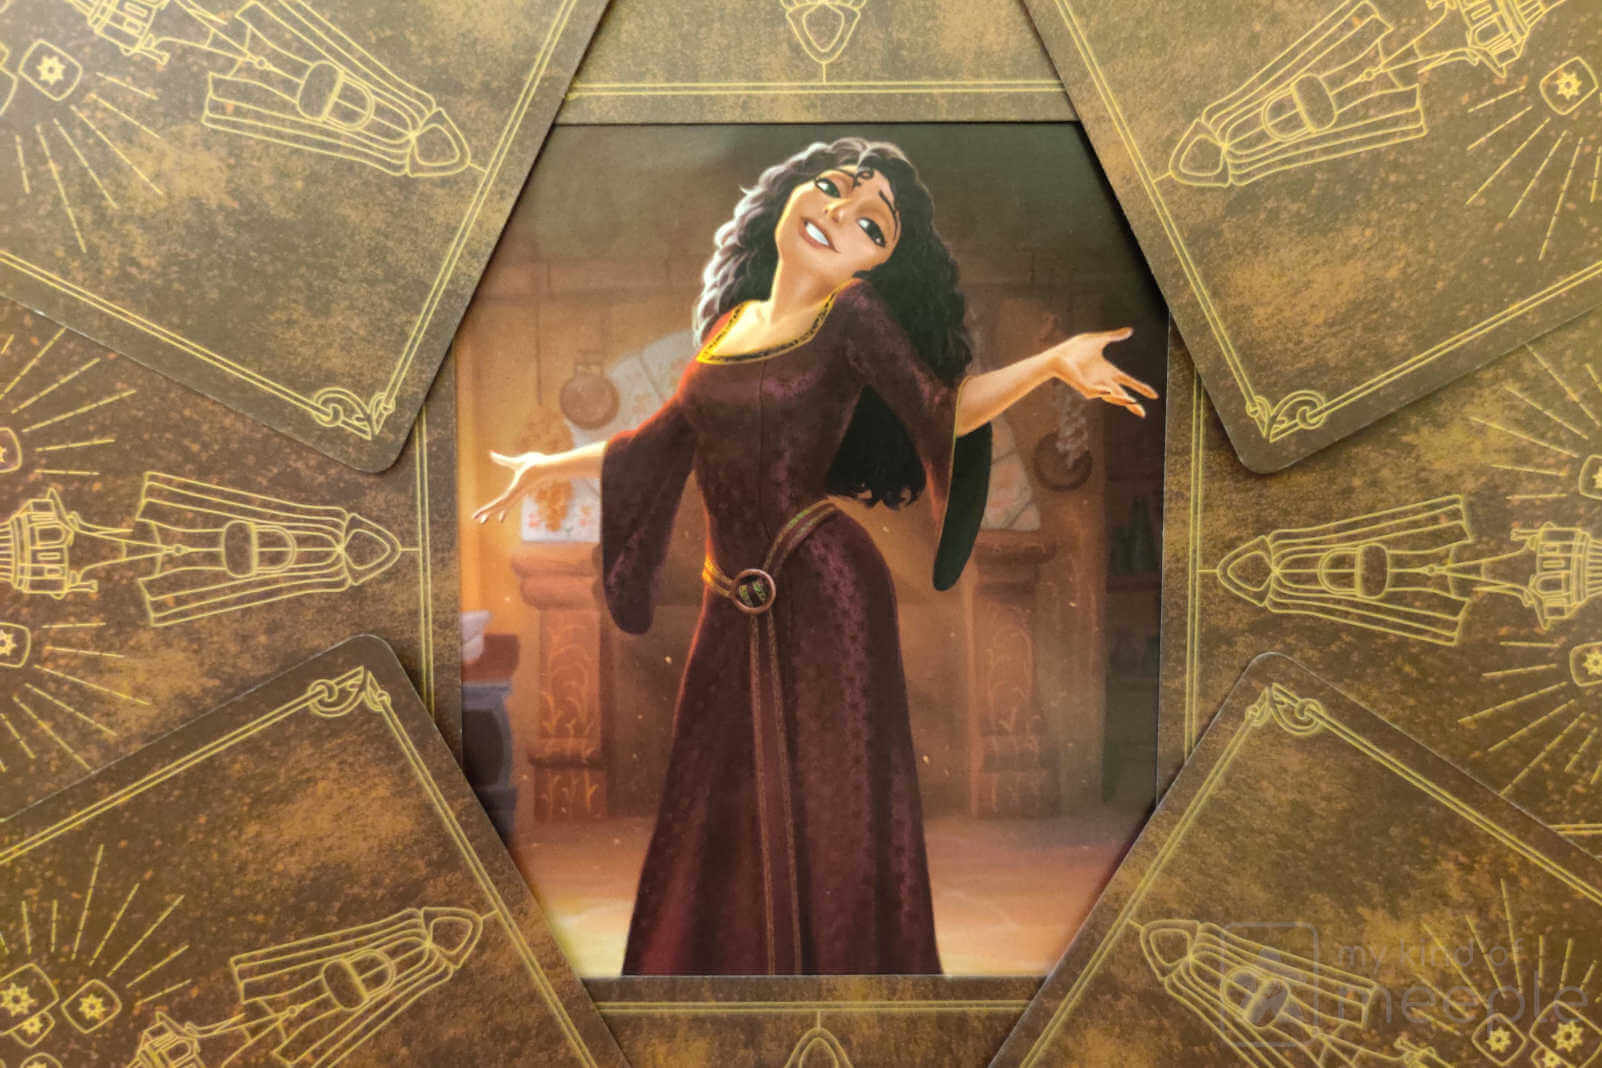 mother gothel disney villainous